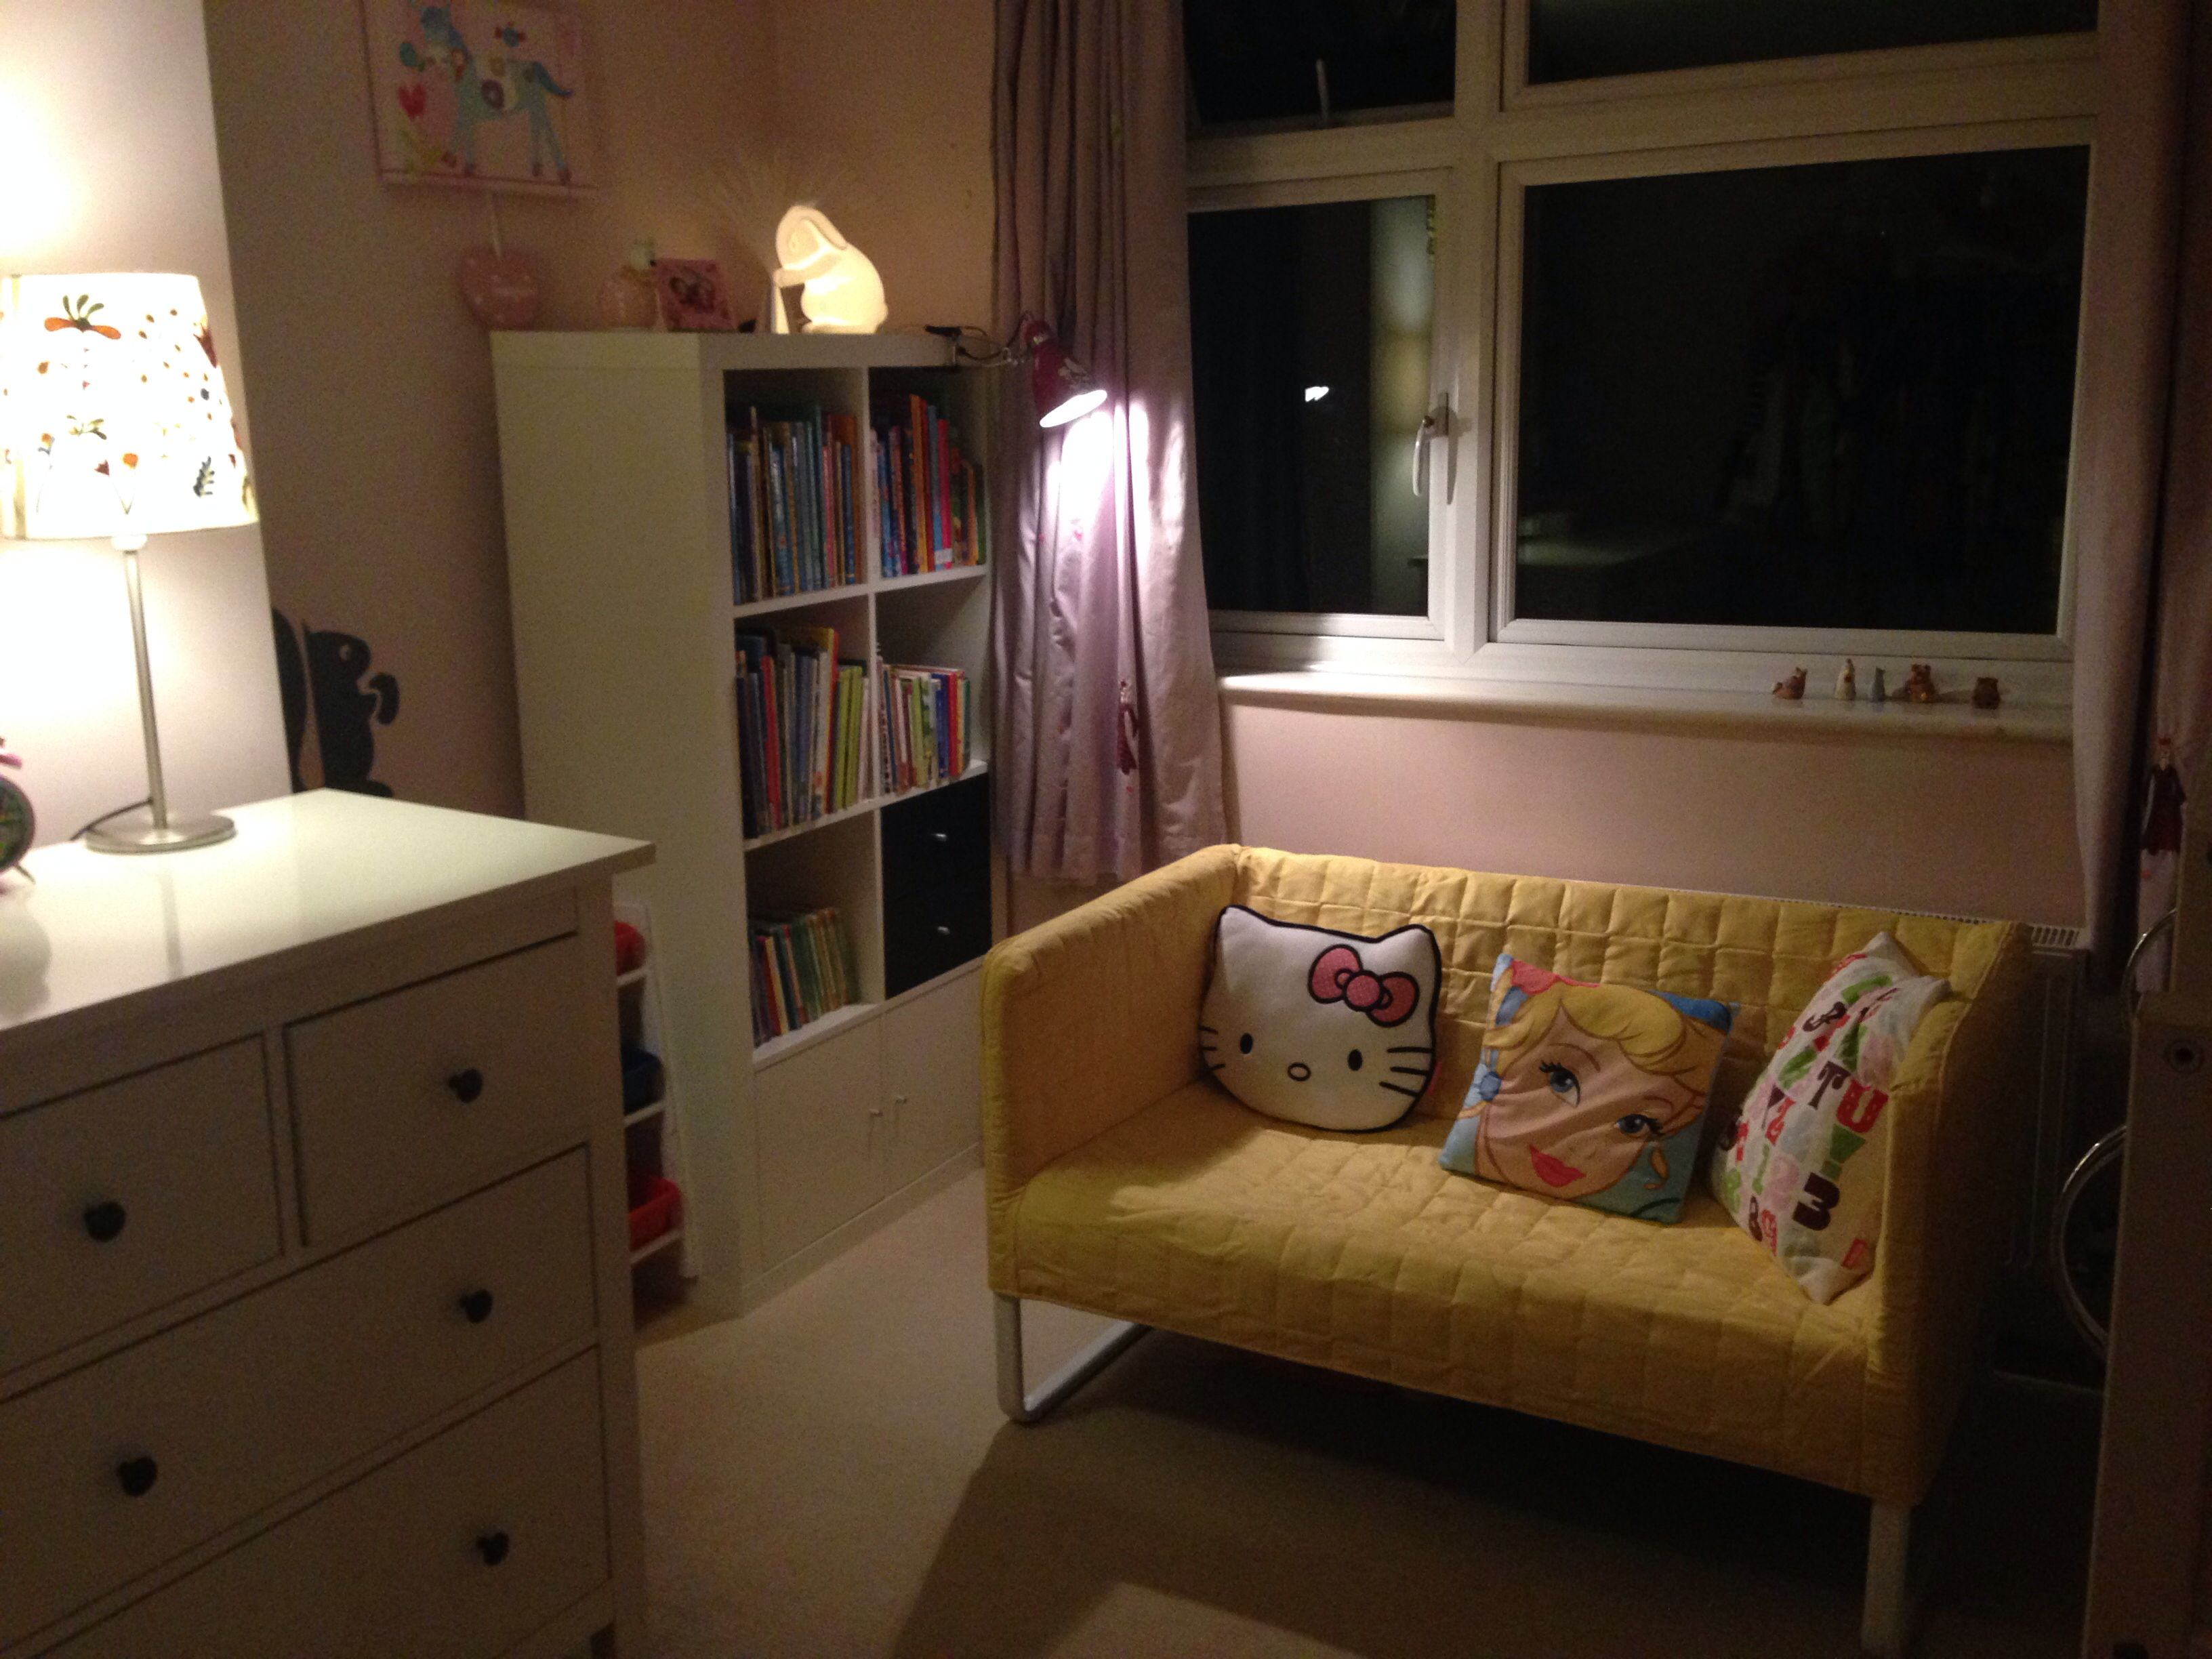 Ikea Knopparp Sofa Girls Updated Room With Ikea Knopparp Yellow Sofa And New